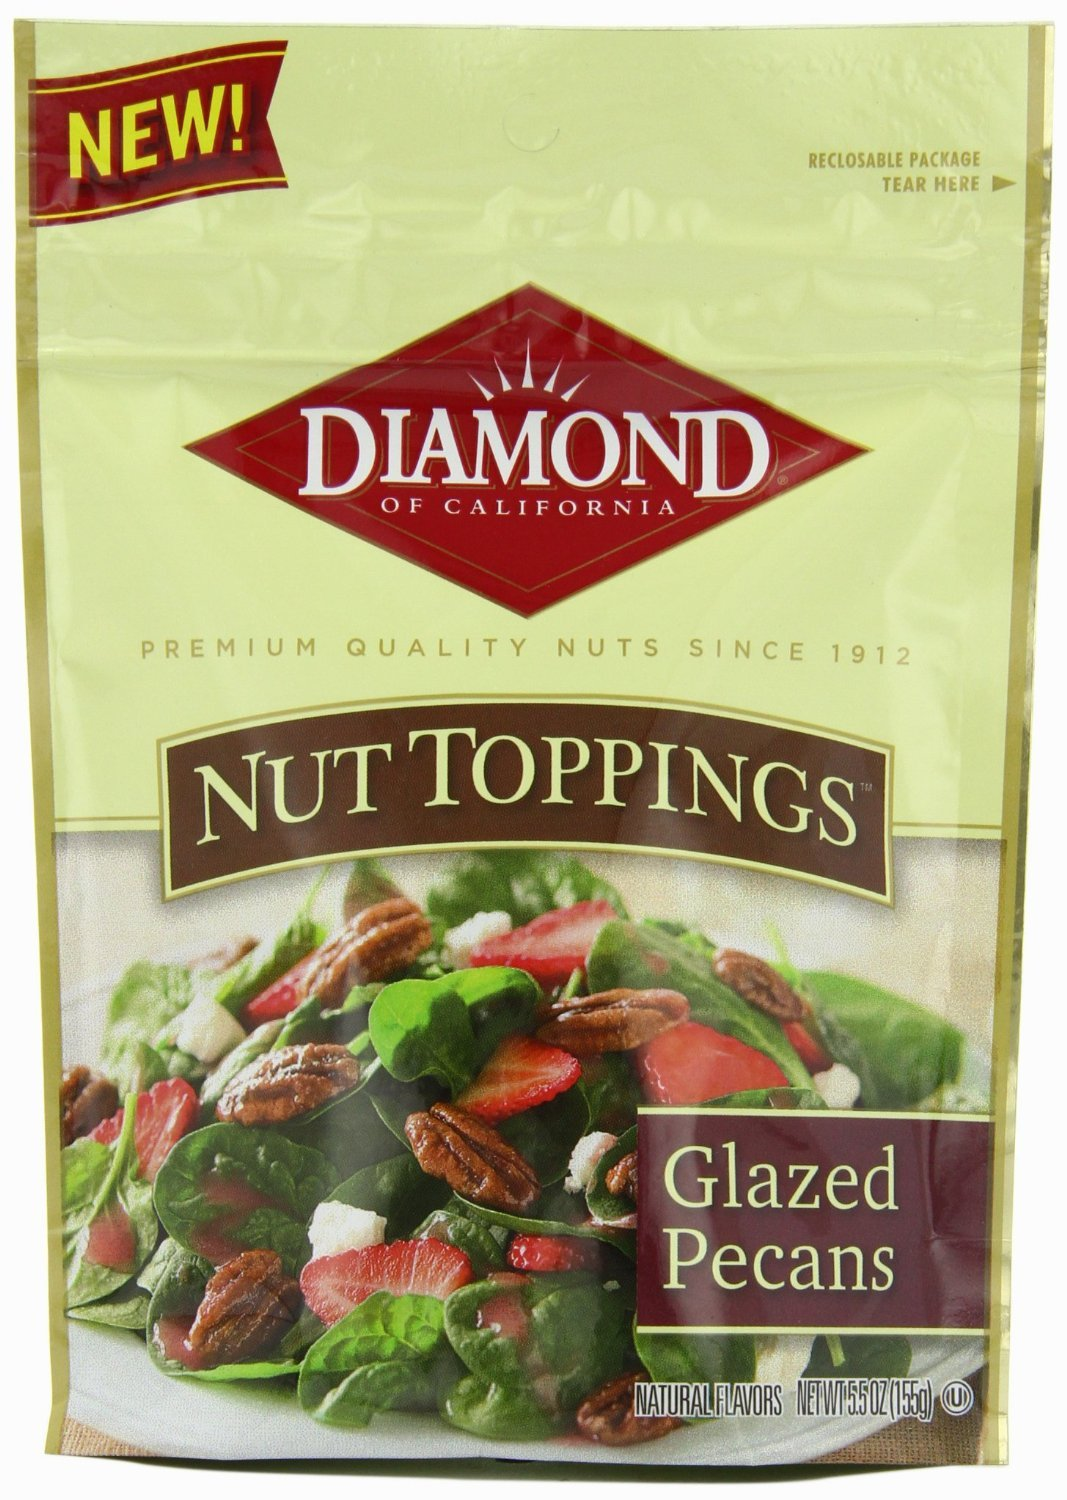 Diamond of California, Nut Toppings, Glazed Pecans, 5.5oz Pouch (Pack of 3)